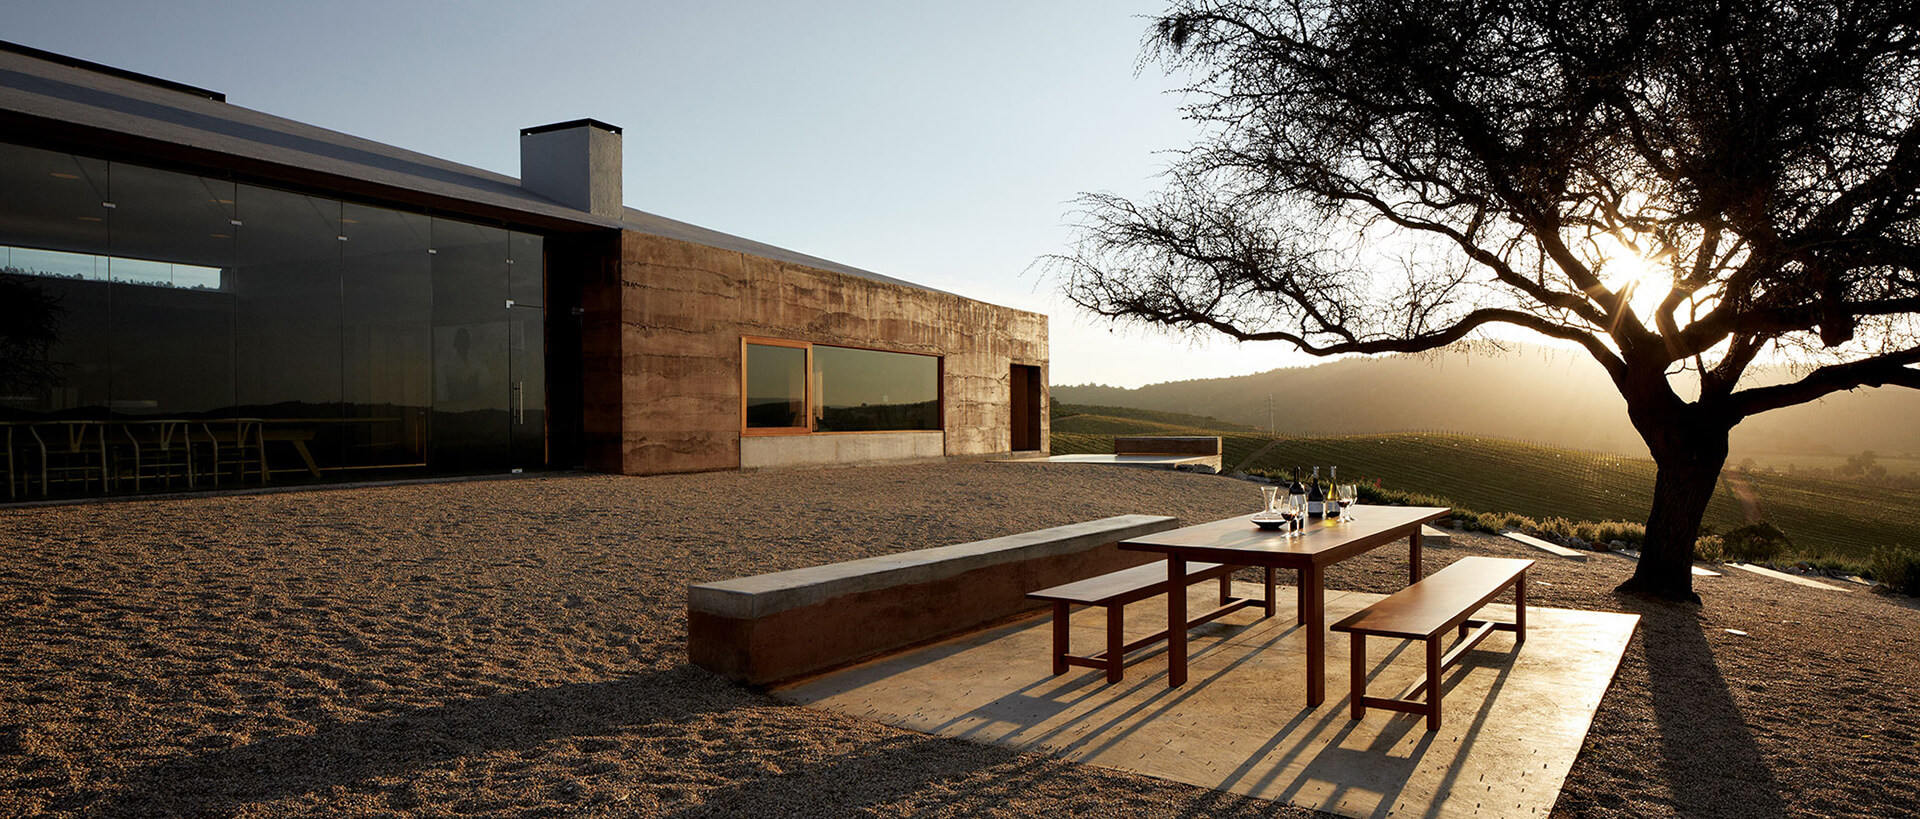 Casa Mirador is crowned by an old twisted mesquite tree | Matías Zegers | STIRworld